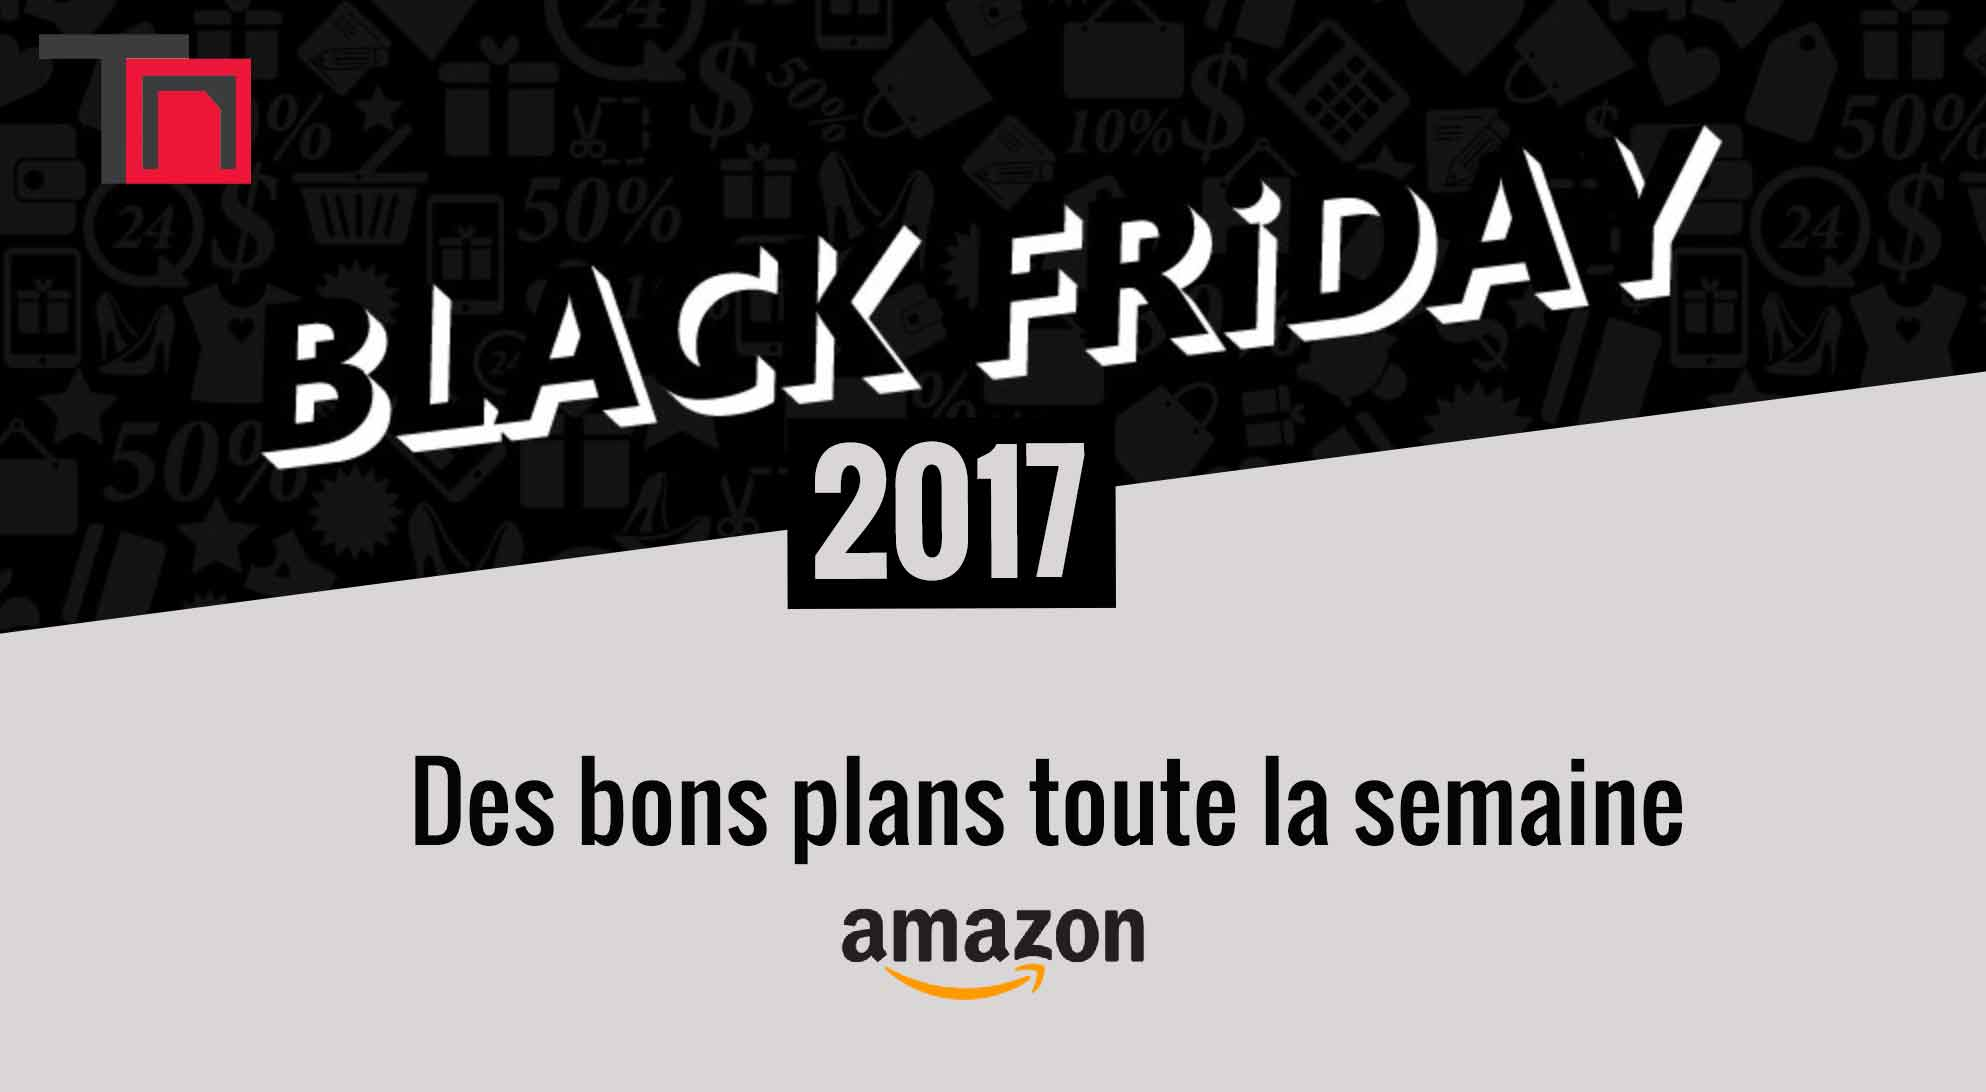 Black Friday 2017 De Black Friday 2017 Des Bons Plans Toute La Semaine